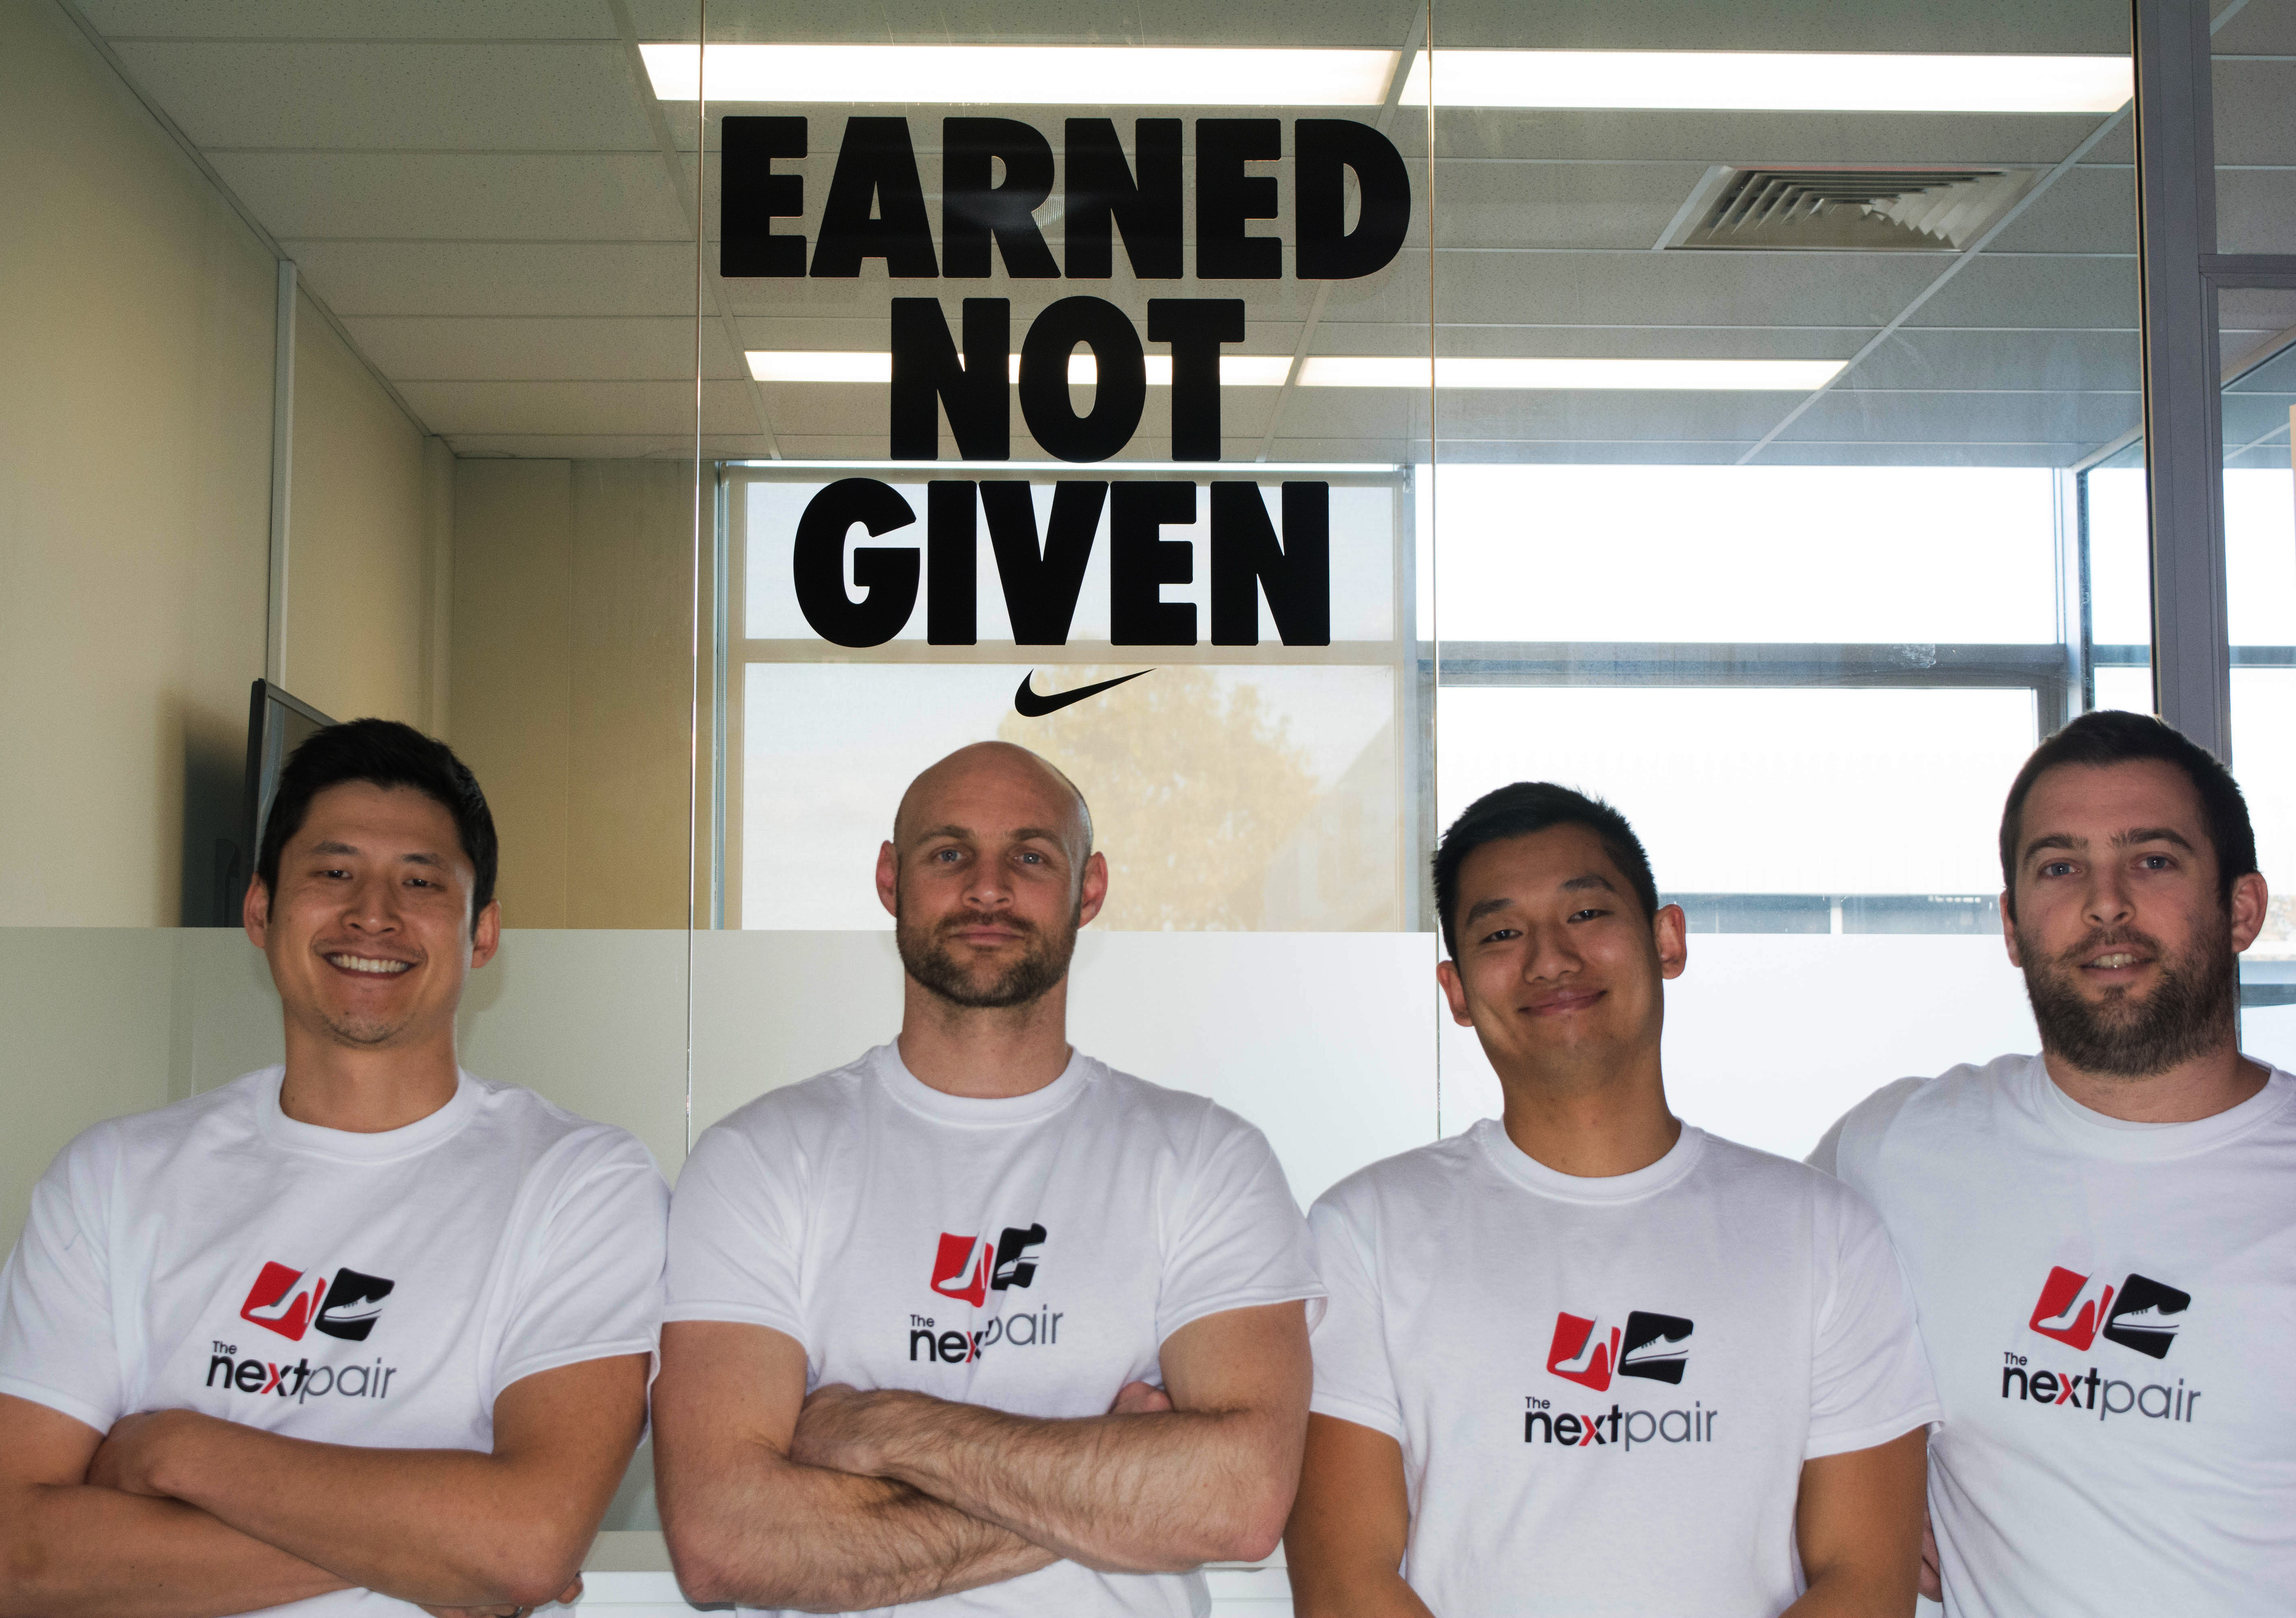 The Next Pair co-founders Alex Hsu, Ryan McClelland, Andrew Wong and Kristopher Hunt